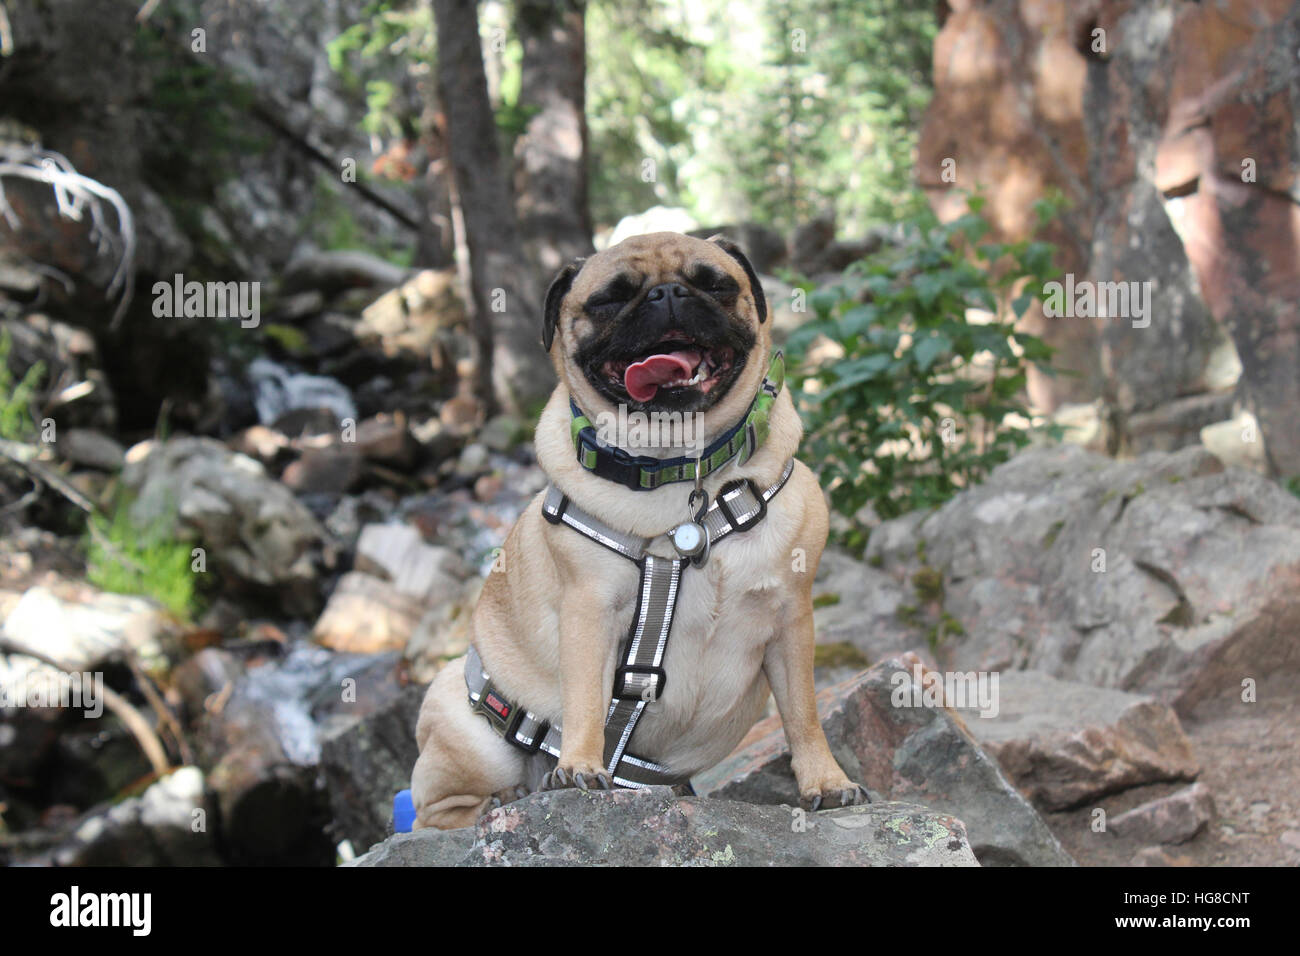 Pug sticking out tongue while sitting on rock in forest - Stock Image